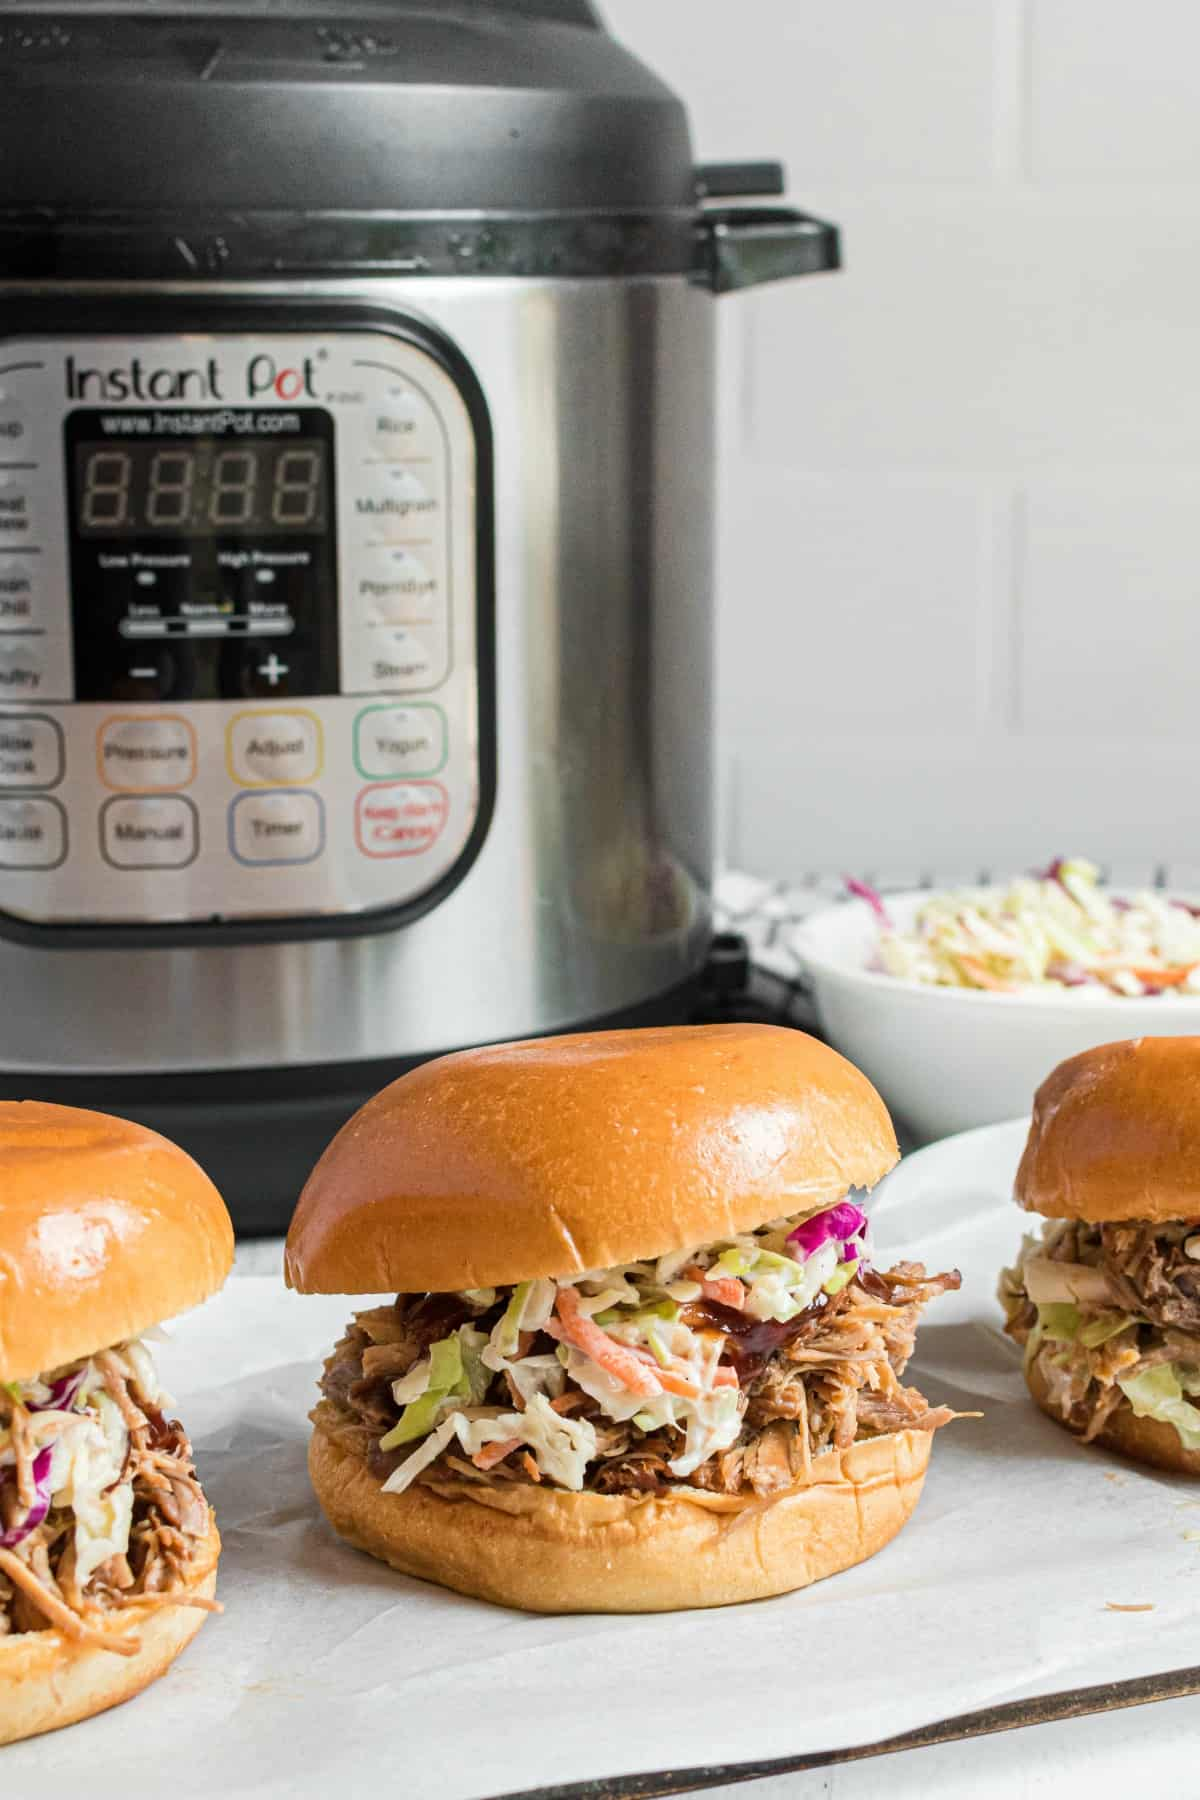 Instant Pot Hawaiian Pork sandwiches on a white plate with pressure cooker in background.